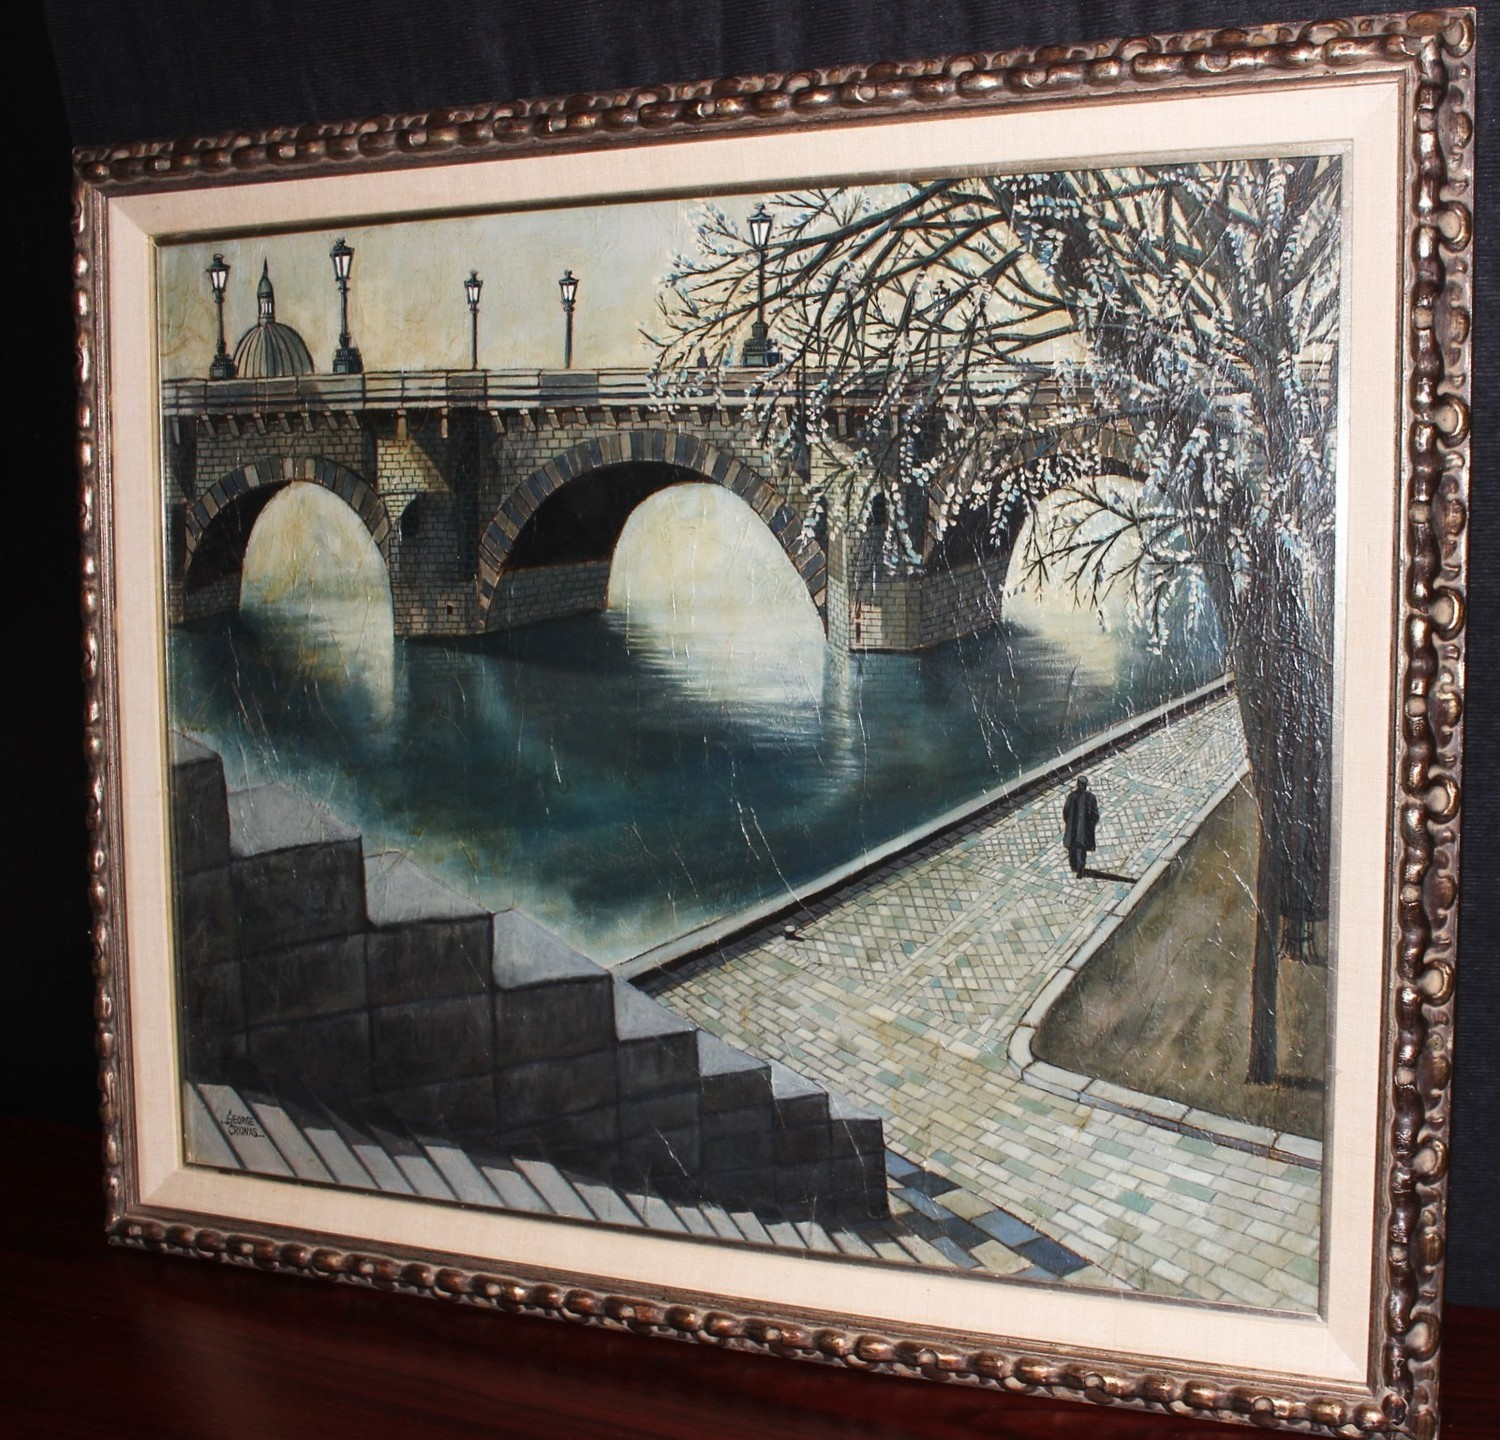 Original George Crionas Embankment Oil on Canvas Framed 35 x 24 Painting, Signed